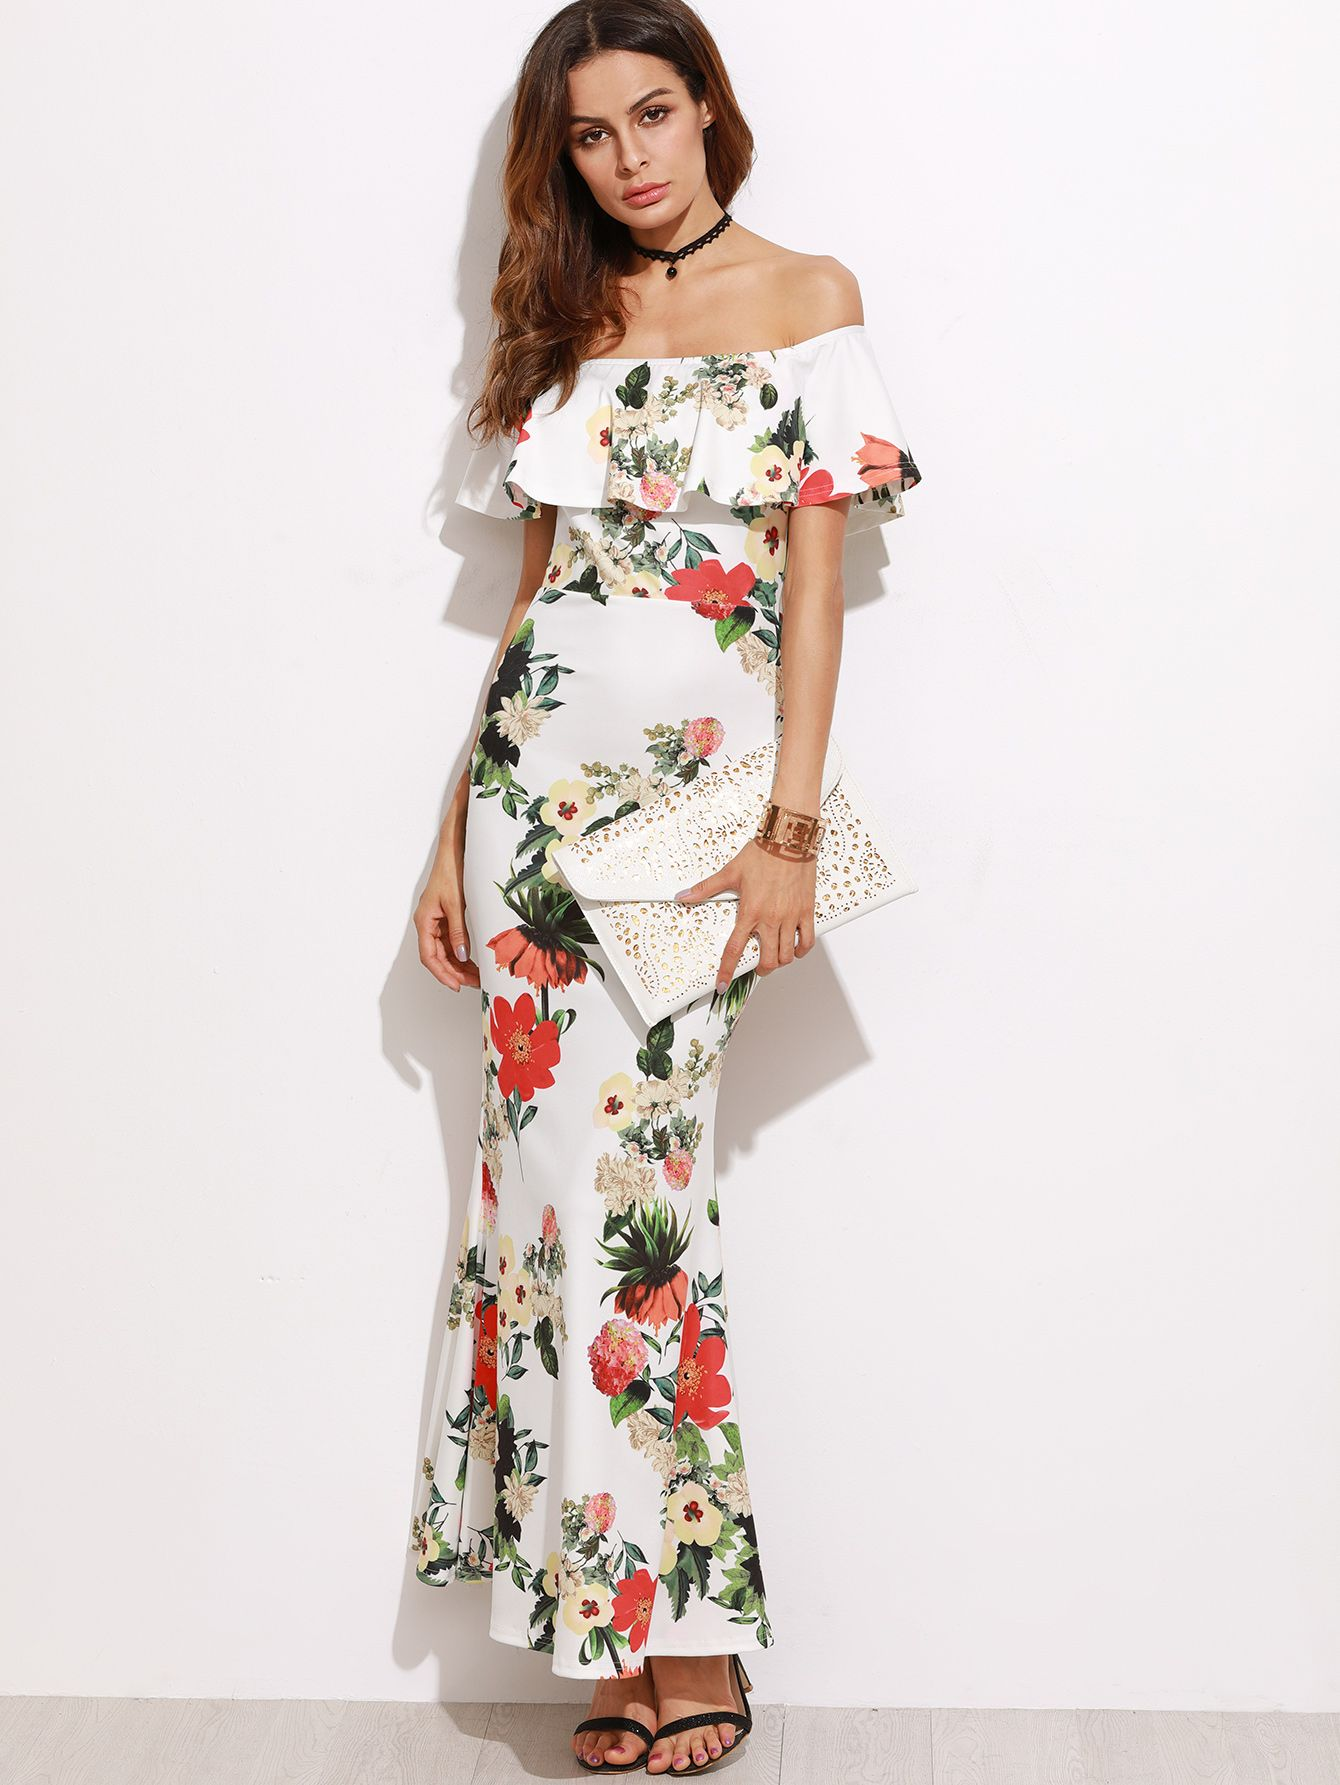 32602f7222 Online shopping for White Flower Print Off The Shoulder Slit Back Fishtail  Dress from a great selection of women s fashion clothing   more at  MakeMeChic.